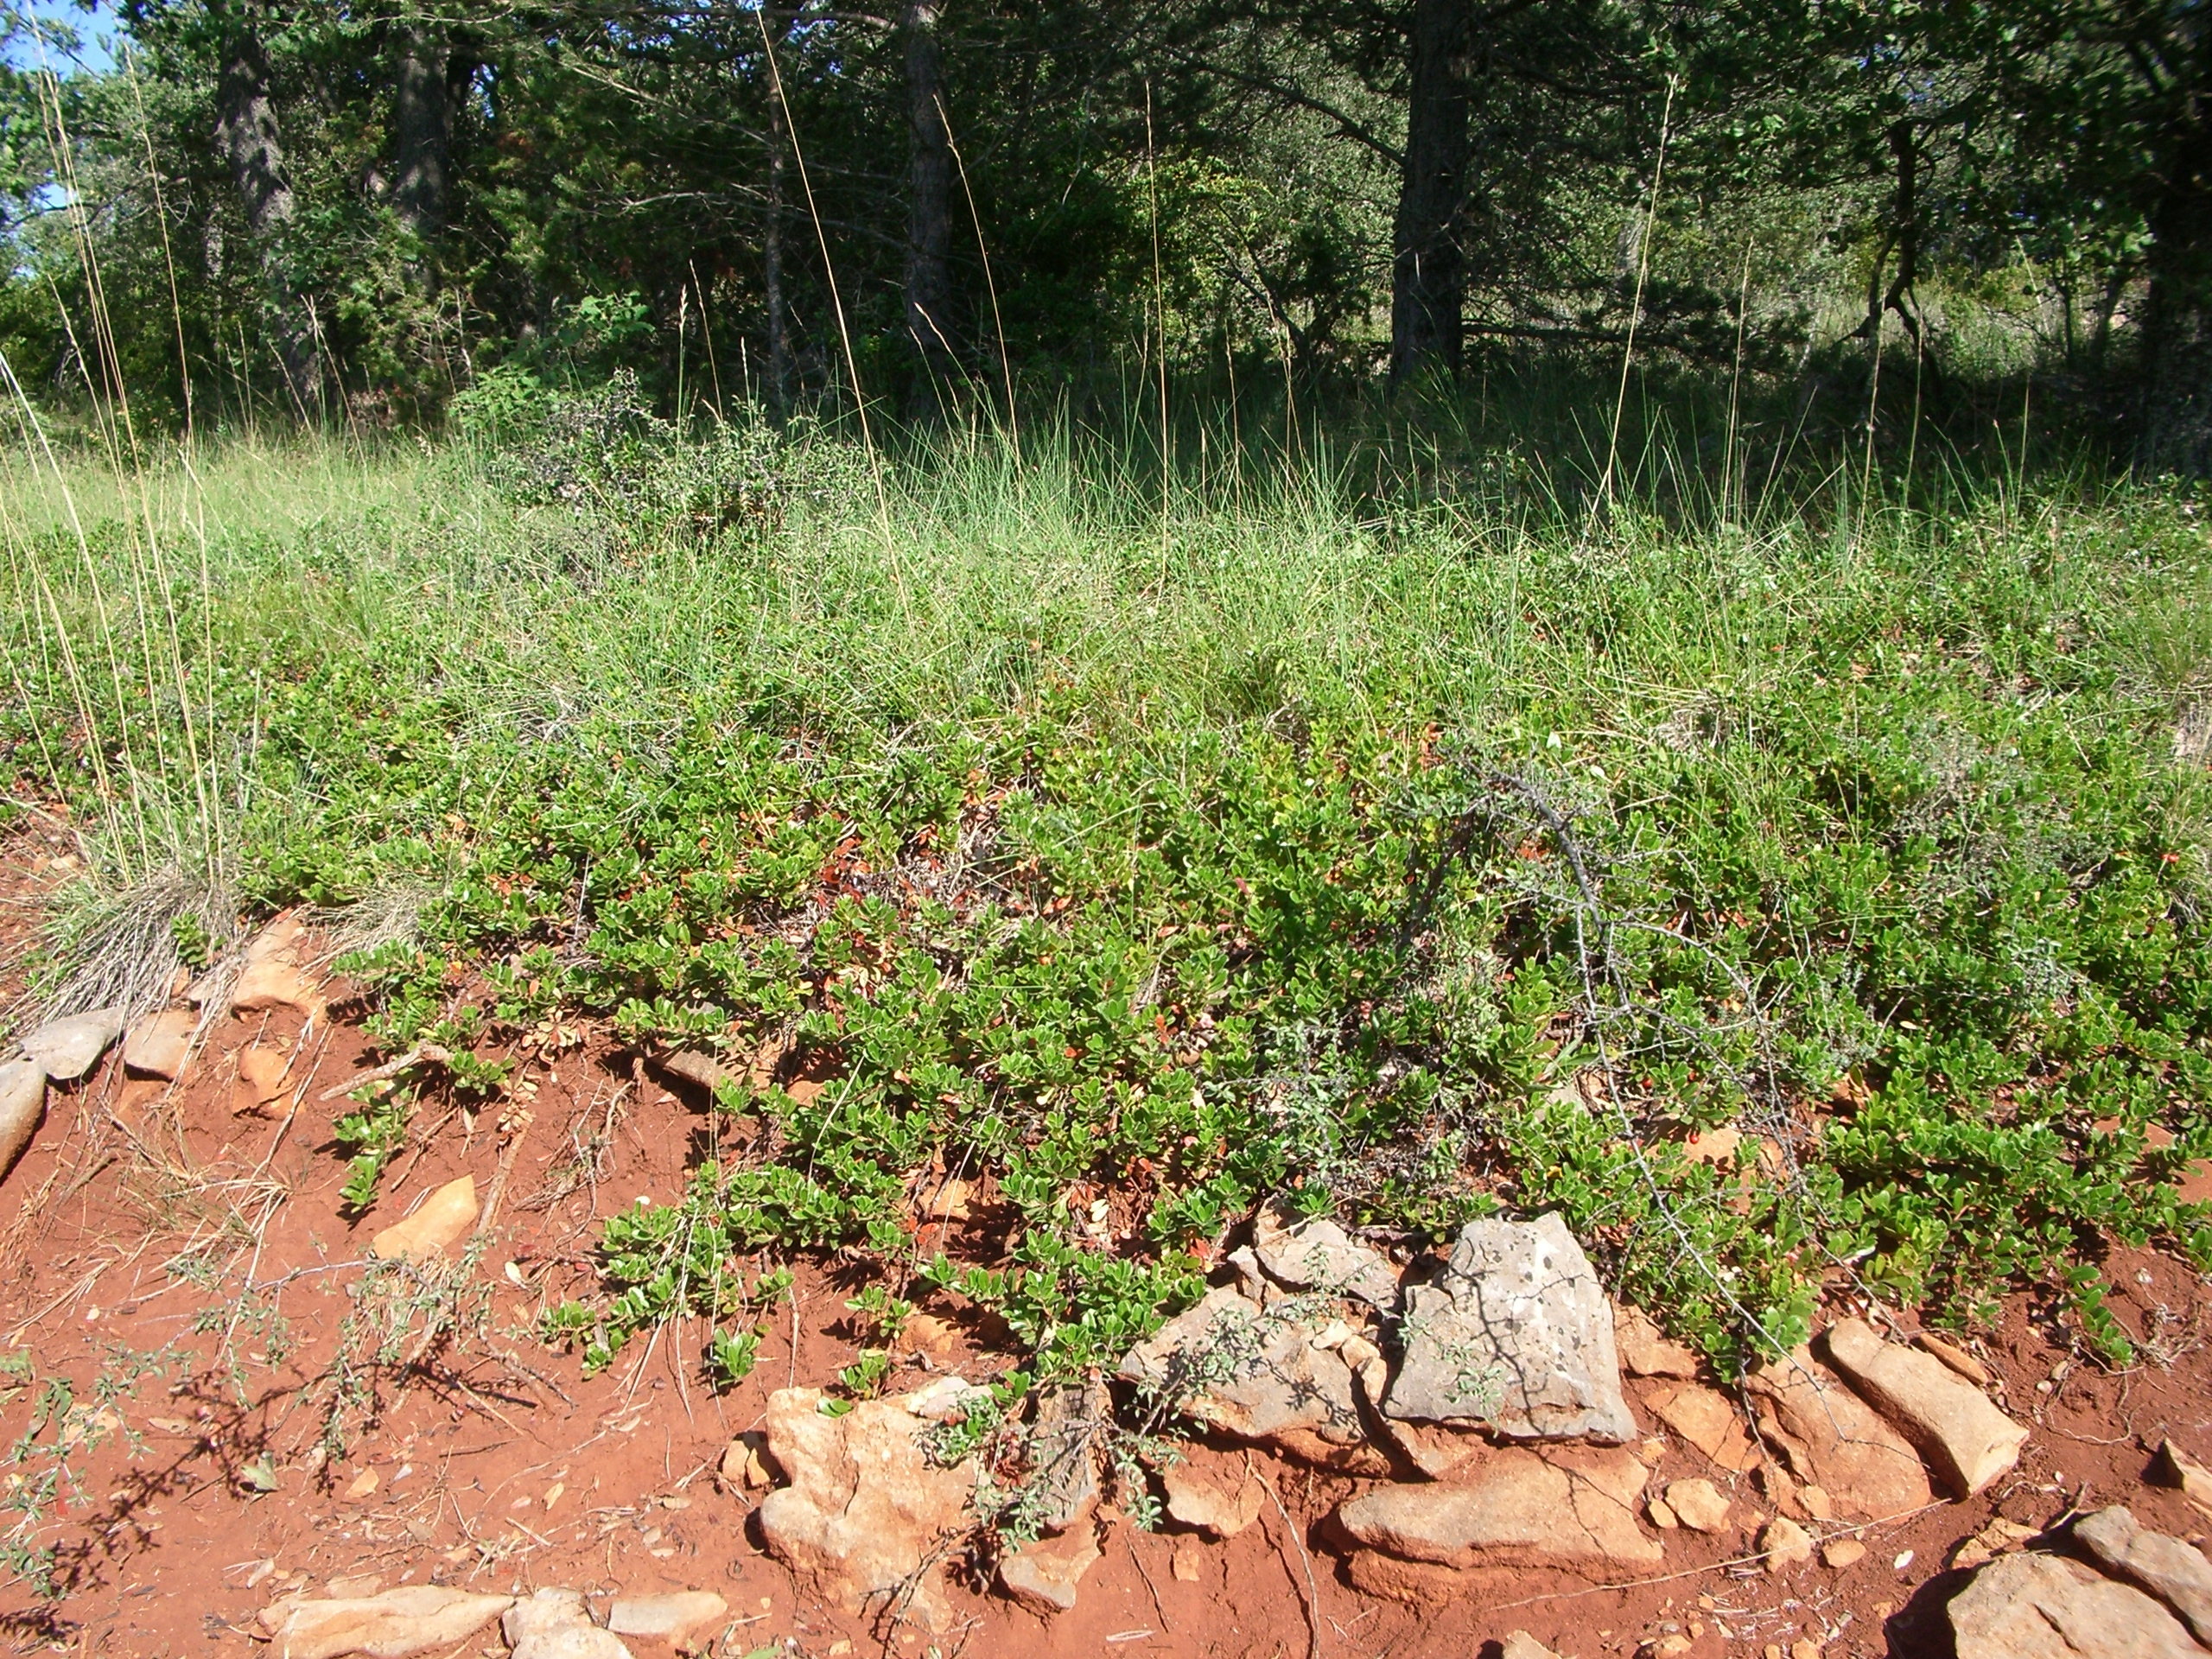 Arctostaphylos uva-ursi groundcover to protect the soil from erosion. Source: GPAM-CTFC